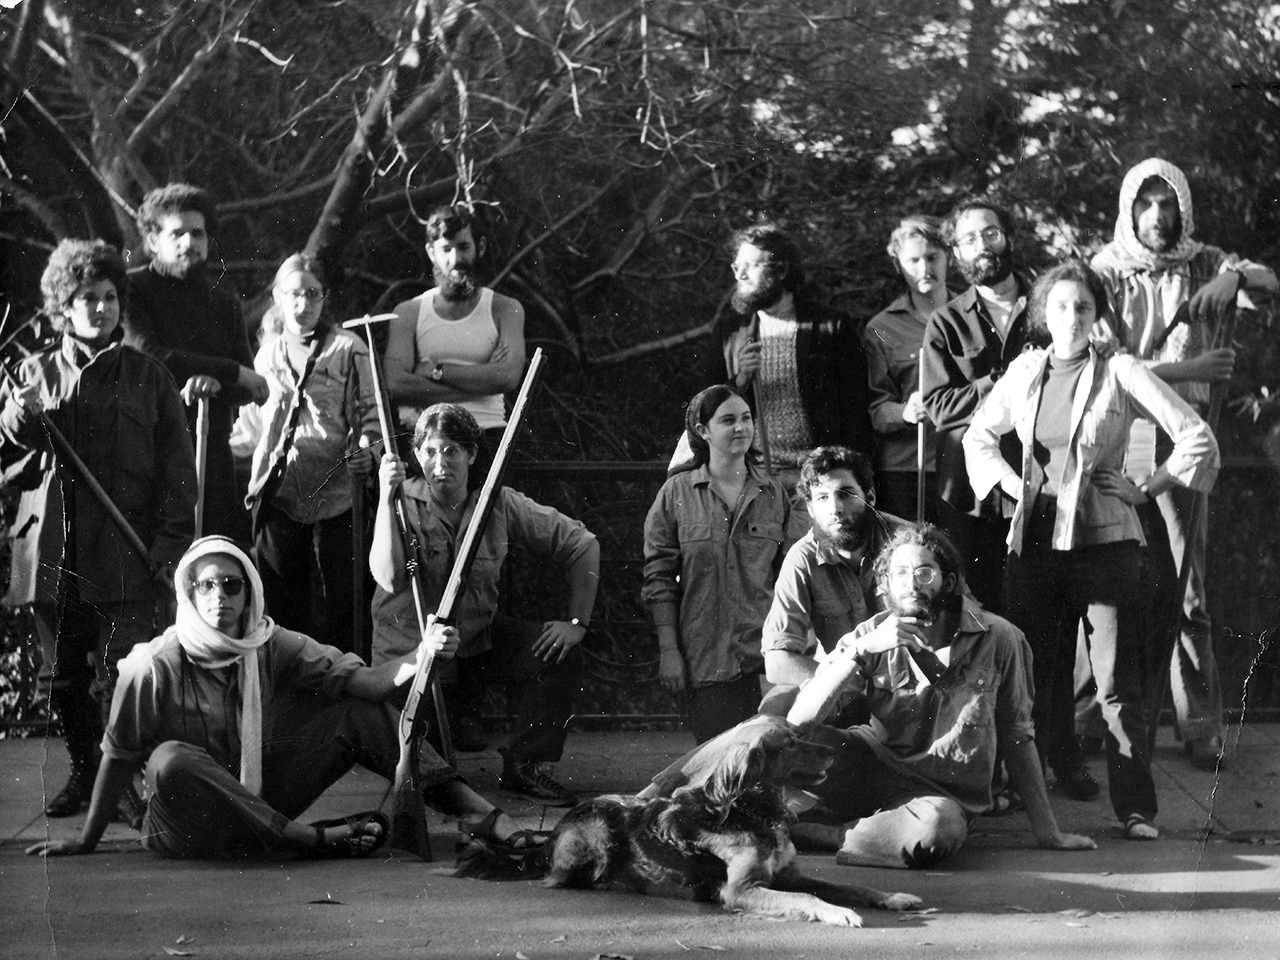 "A group of young Bay Area Jews, many of whom were involved with the sit-in, pose as ""chalutzim"" at UC Berkeley in the '70s. Standing (from left): Elaine Schlackman, David De Nola, Marcie Lincoff, David Lichtenstein, Arnie Druck, Jack Morgenstein, Buddy Timberg, Judy Timberg and Shaul Osadchy. Seated/kneeling (from left): David Biale, Jane Rubin, Miri Gold, Bradley Burston, Ken Bob and the Timbergs' dog."